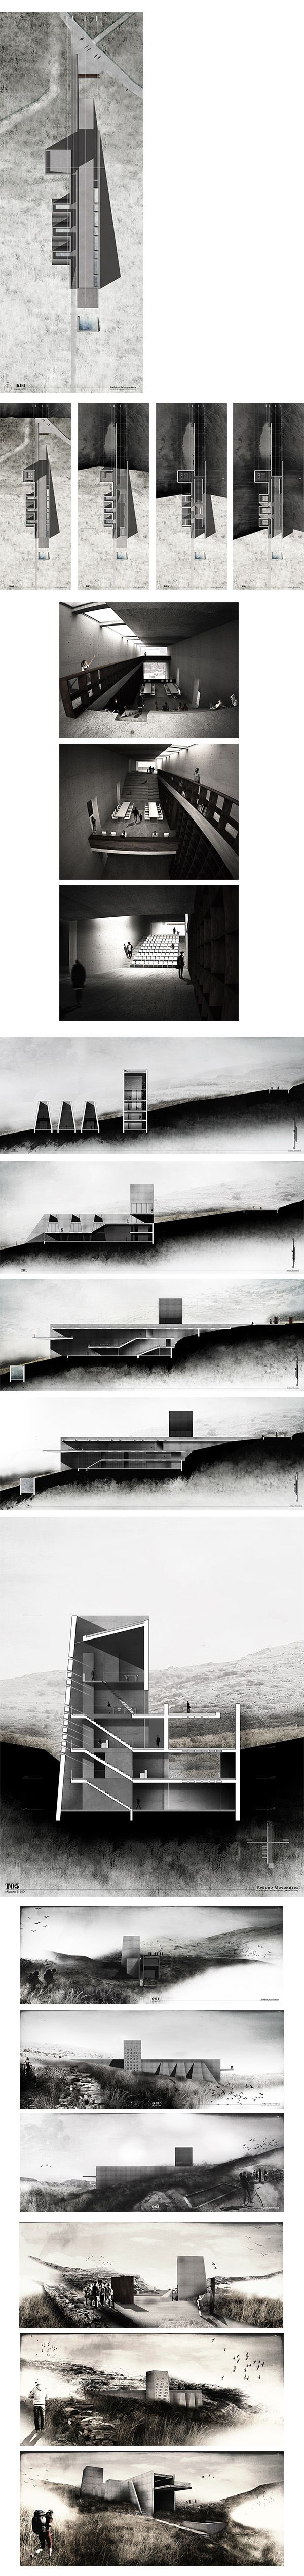 Articles - STUDENTS PROJECTS - DESIGN PROJECTS - PROJECTS2013 - Andros Routes